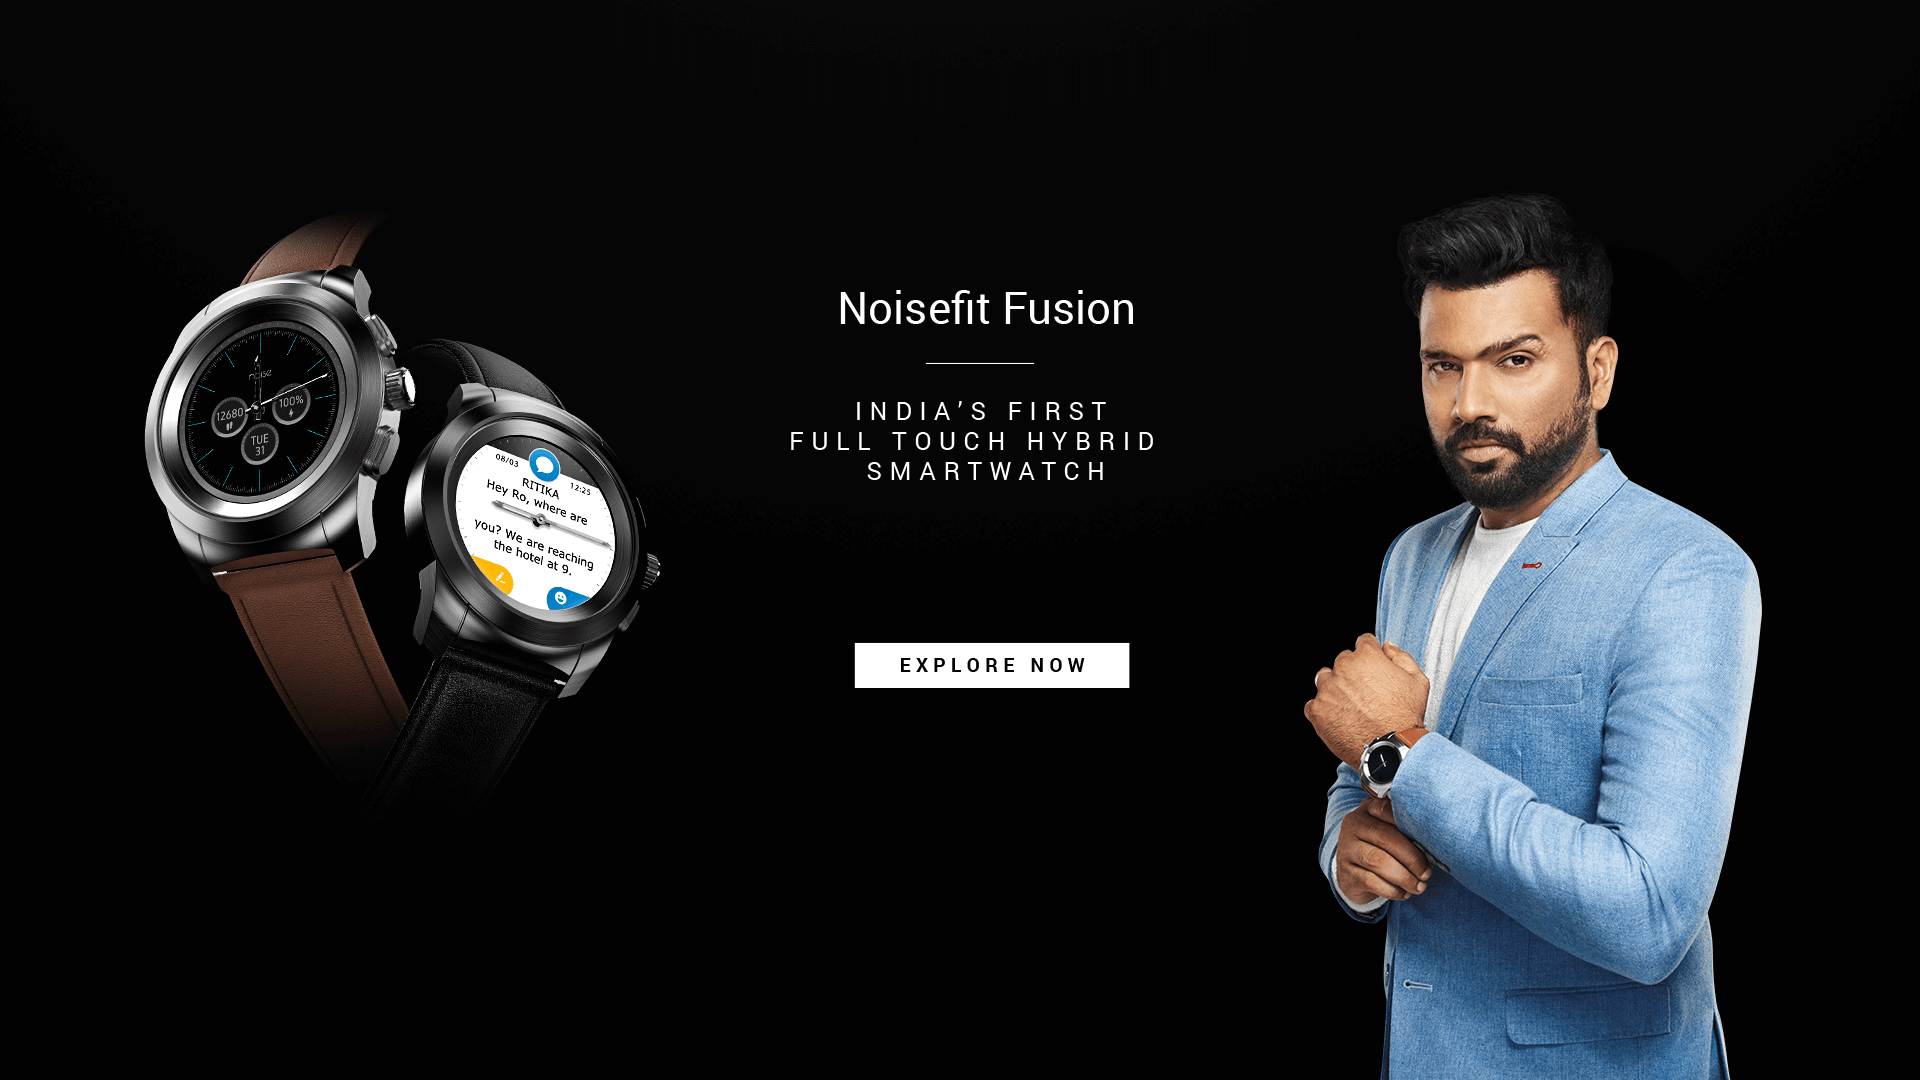 NoiseFit Fusion Hybrid Watch Desktop Banner